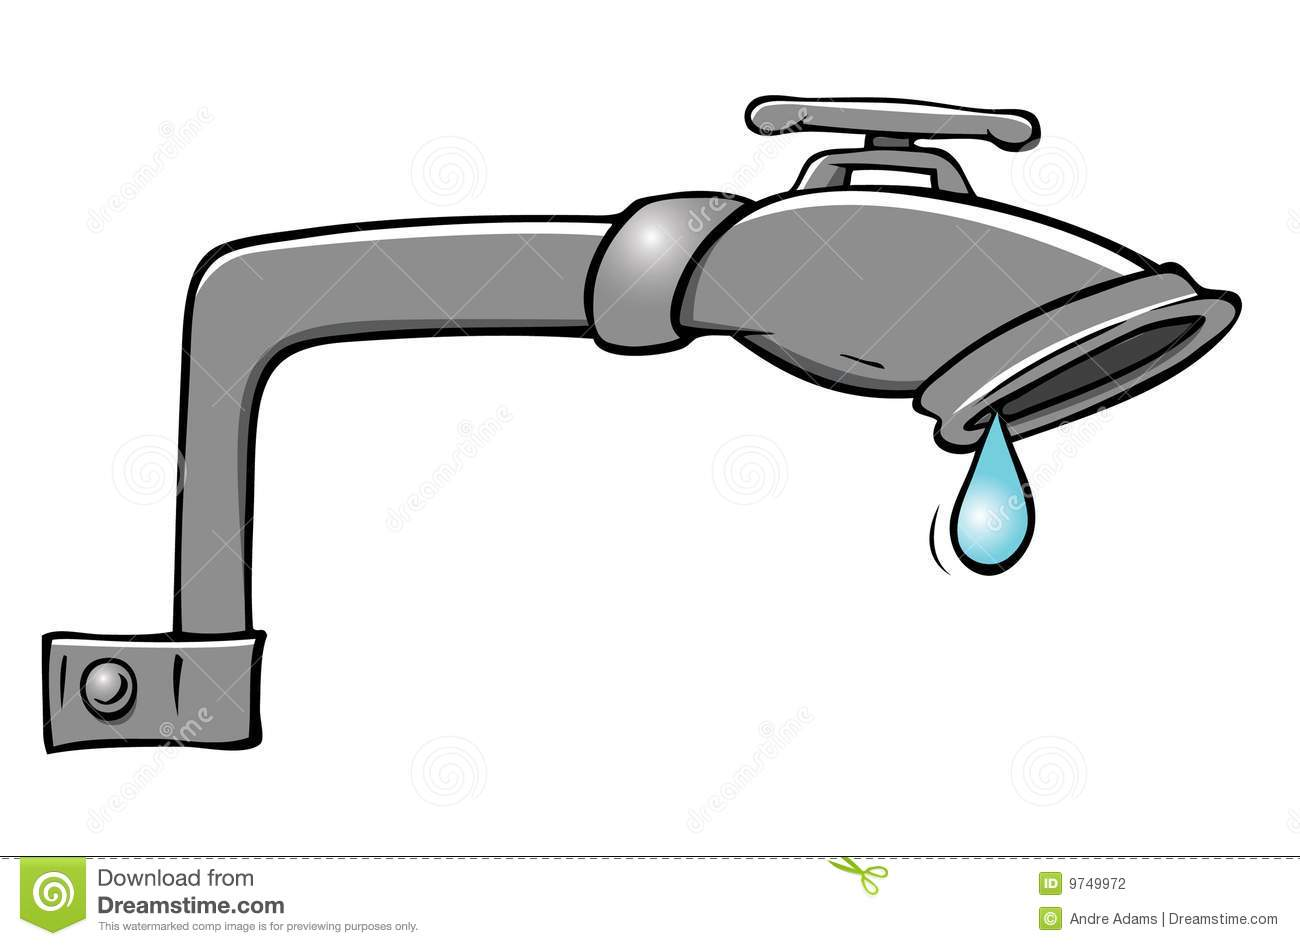 Leaky faucet clipart.